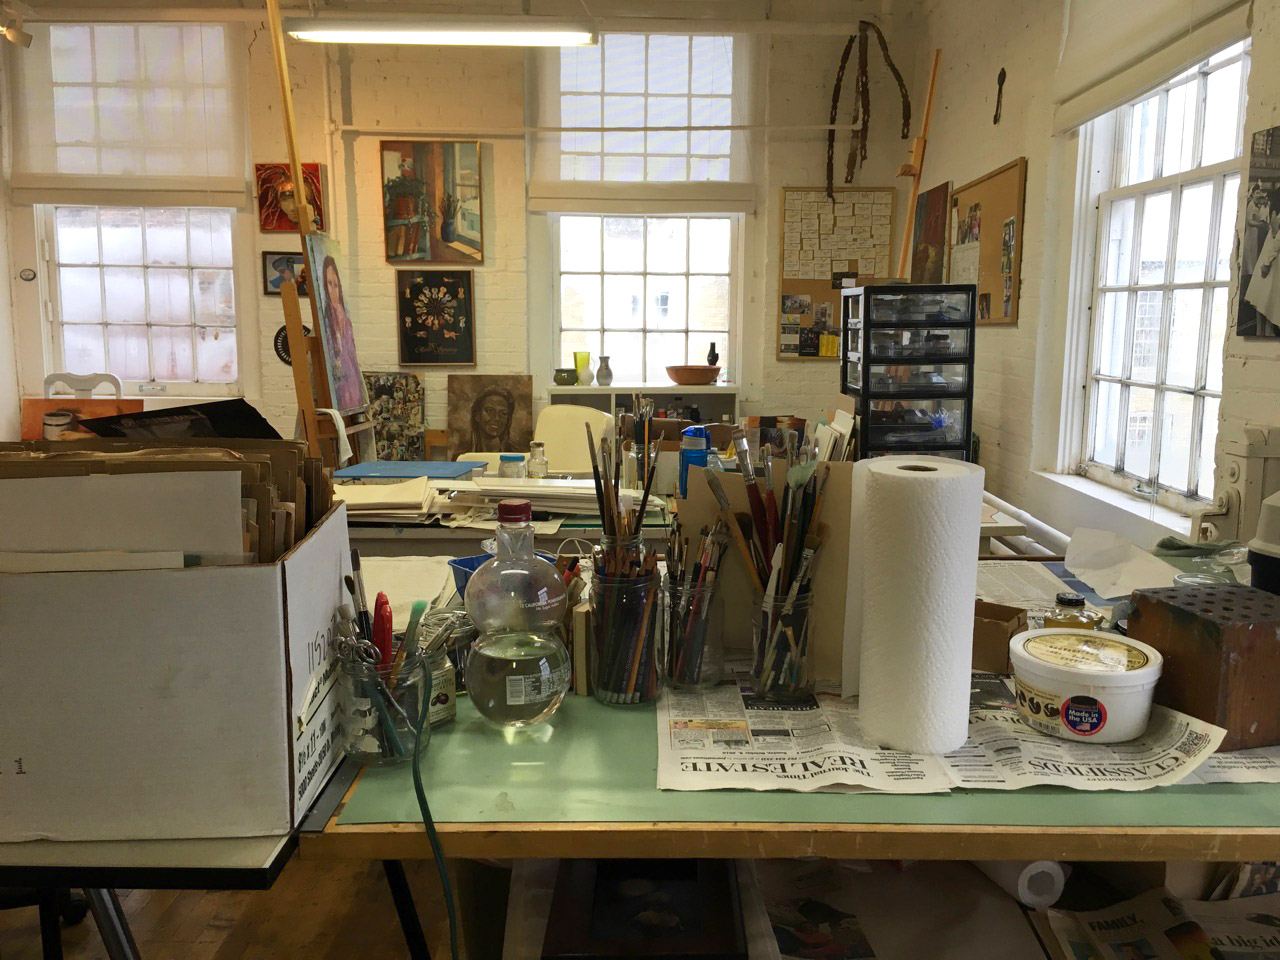 A view of one of our artist's working studio space.